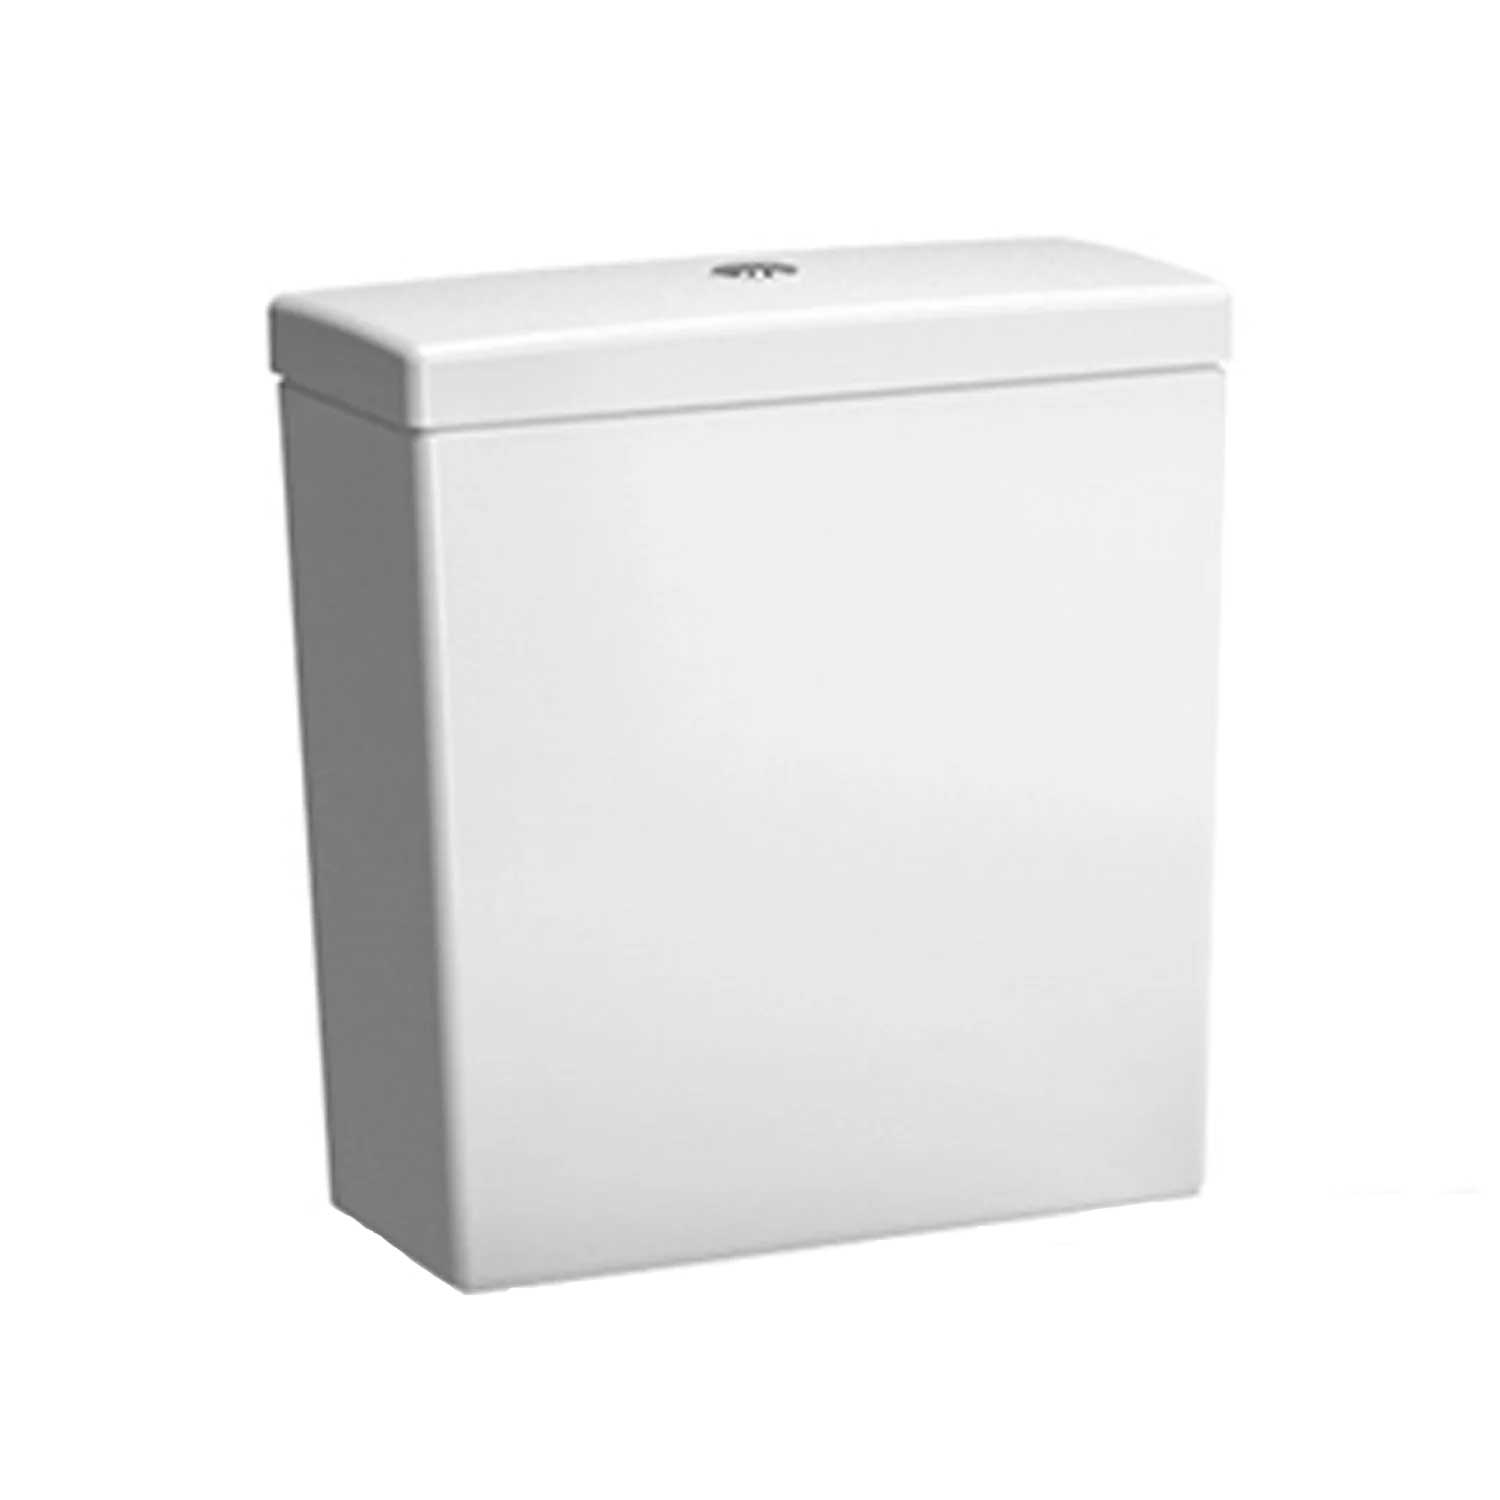 VitrA S50 Comfort Height Close Coupled Toilet WC Push Button Cistern - Soft Close Seat-1